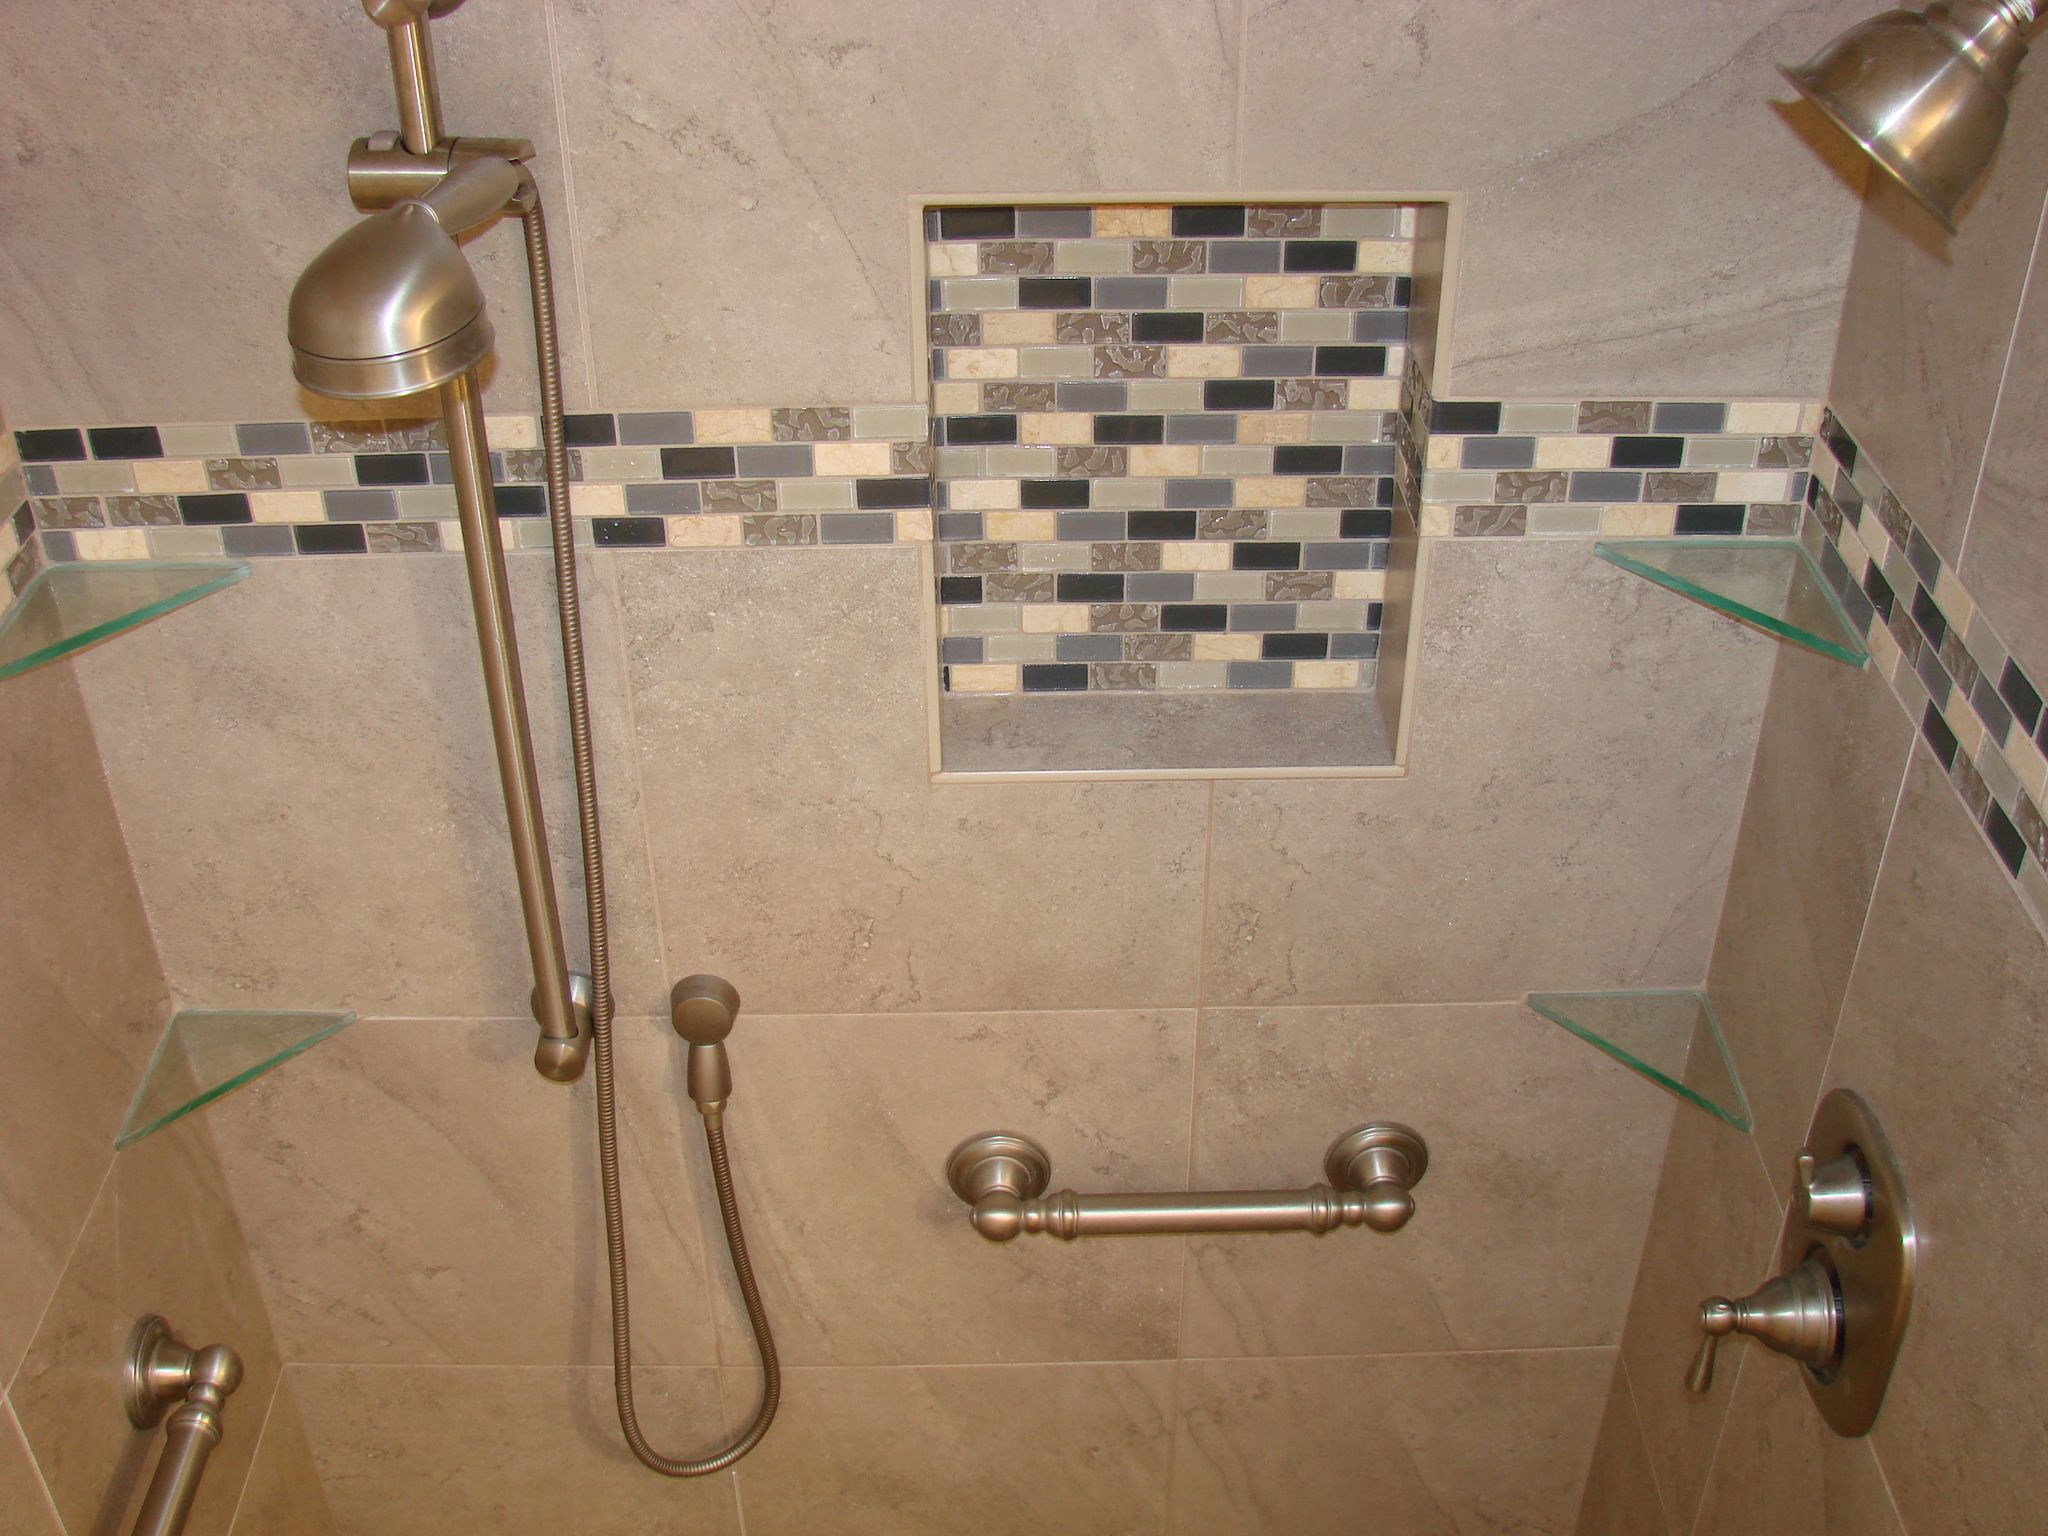 bp bath b rectangular walk p alex tile shower for llc construction freddi tiles accent in